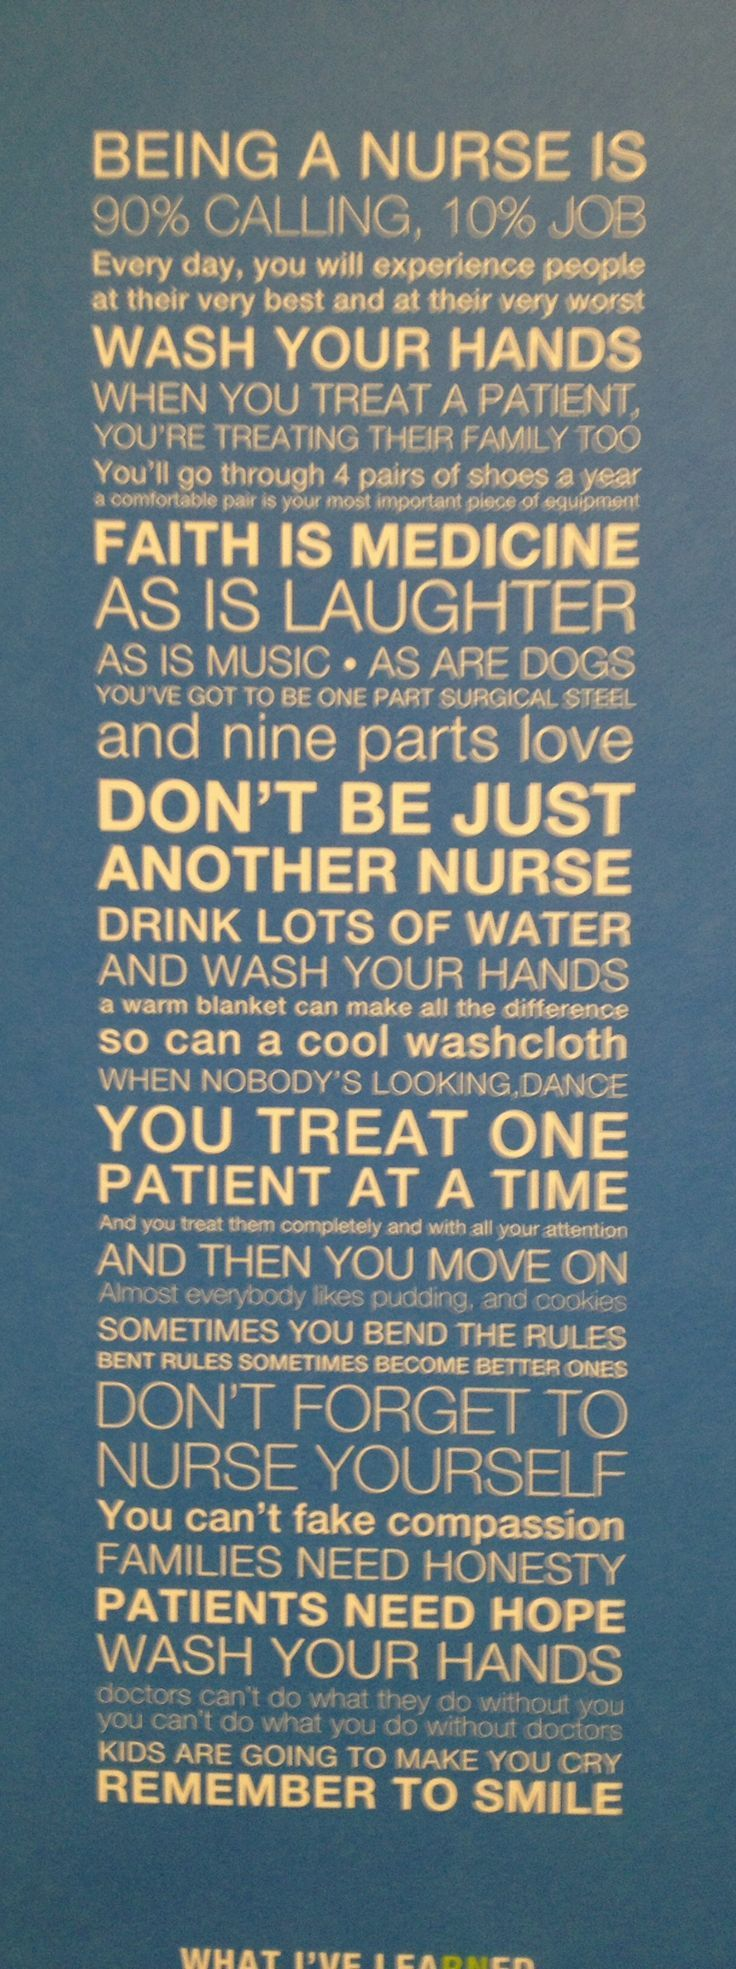 Wisdom for nurses Wah your hands 7